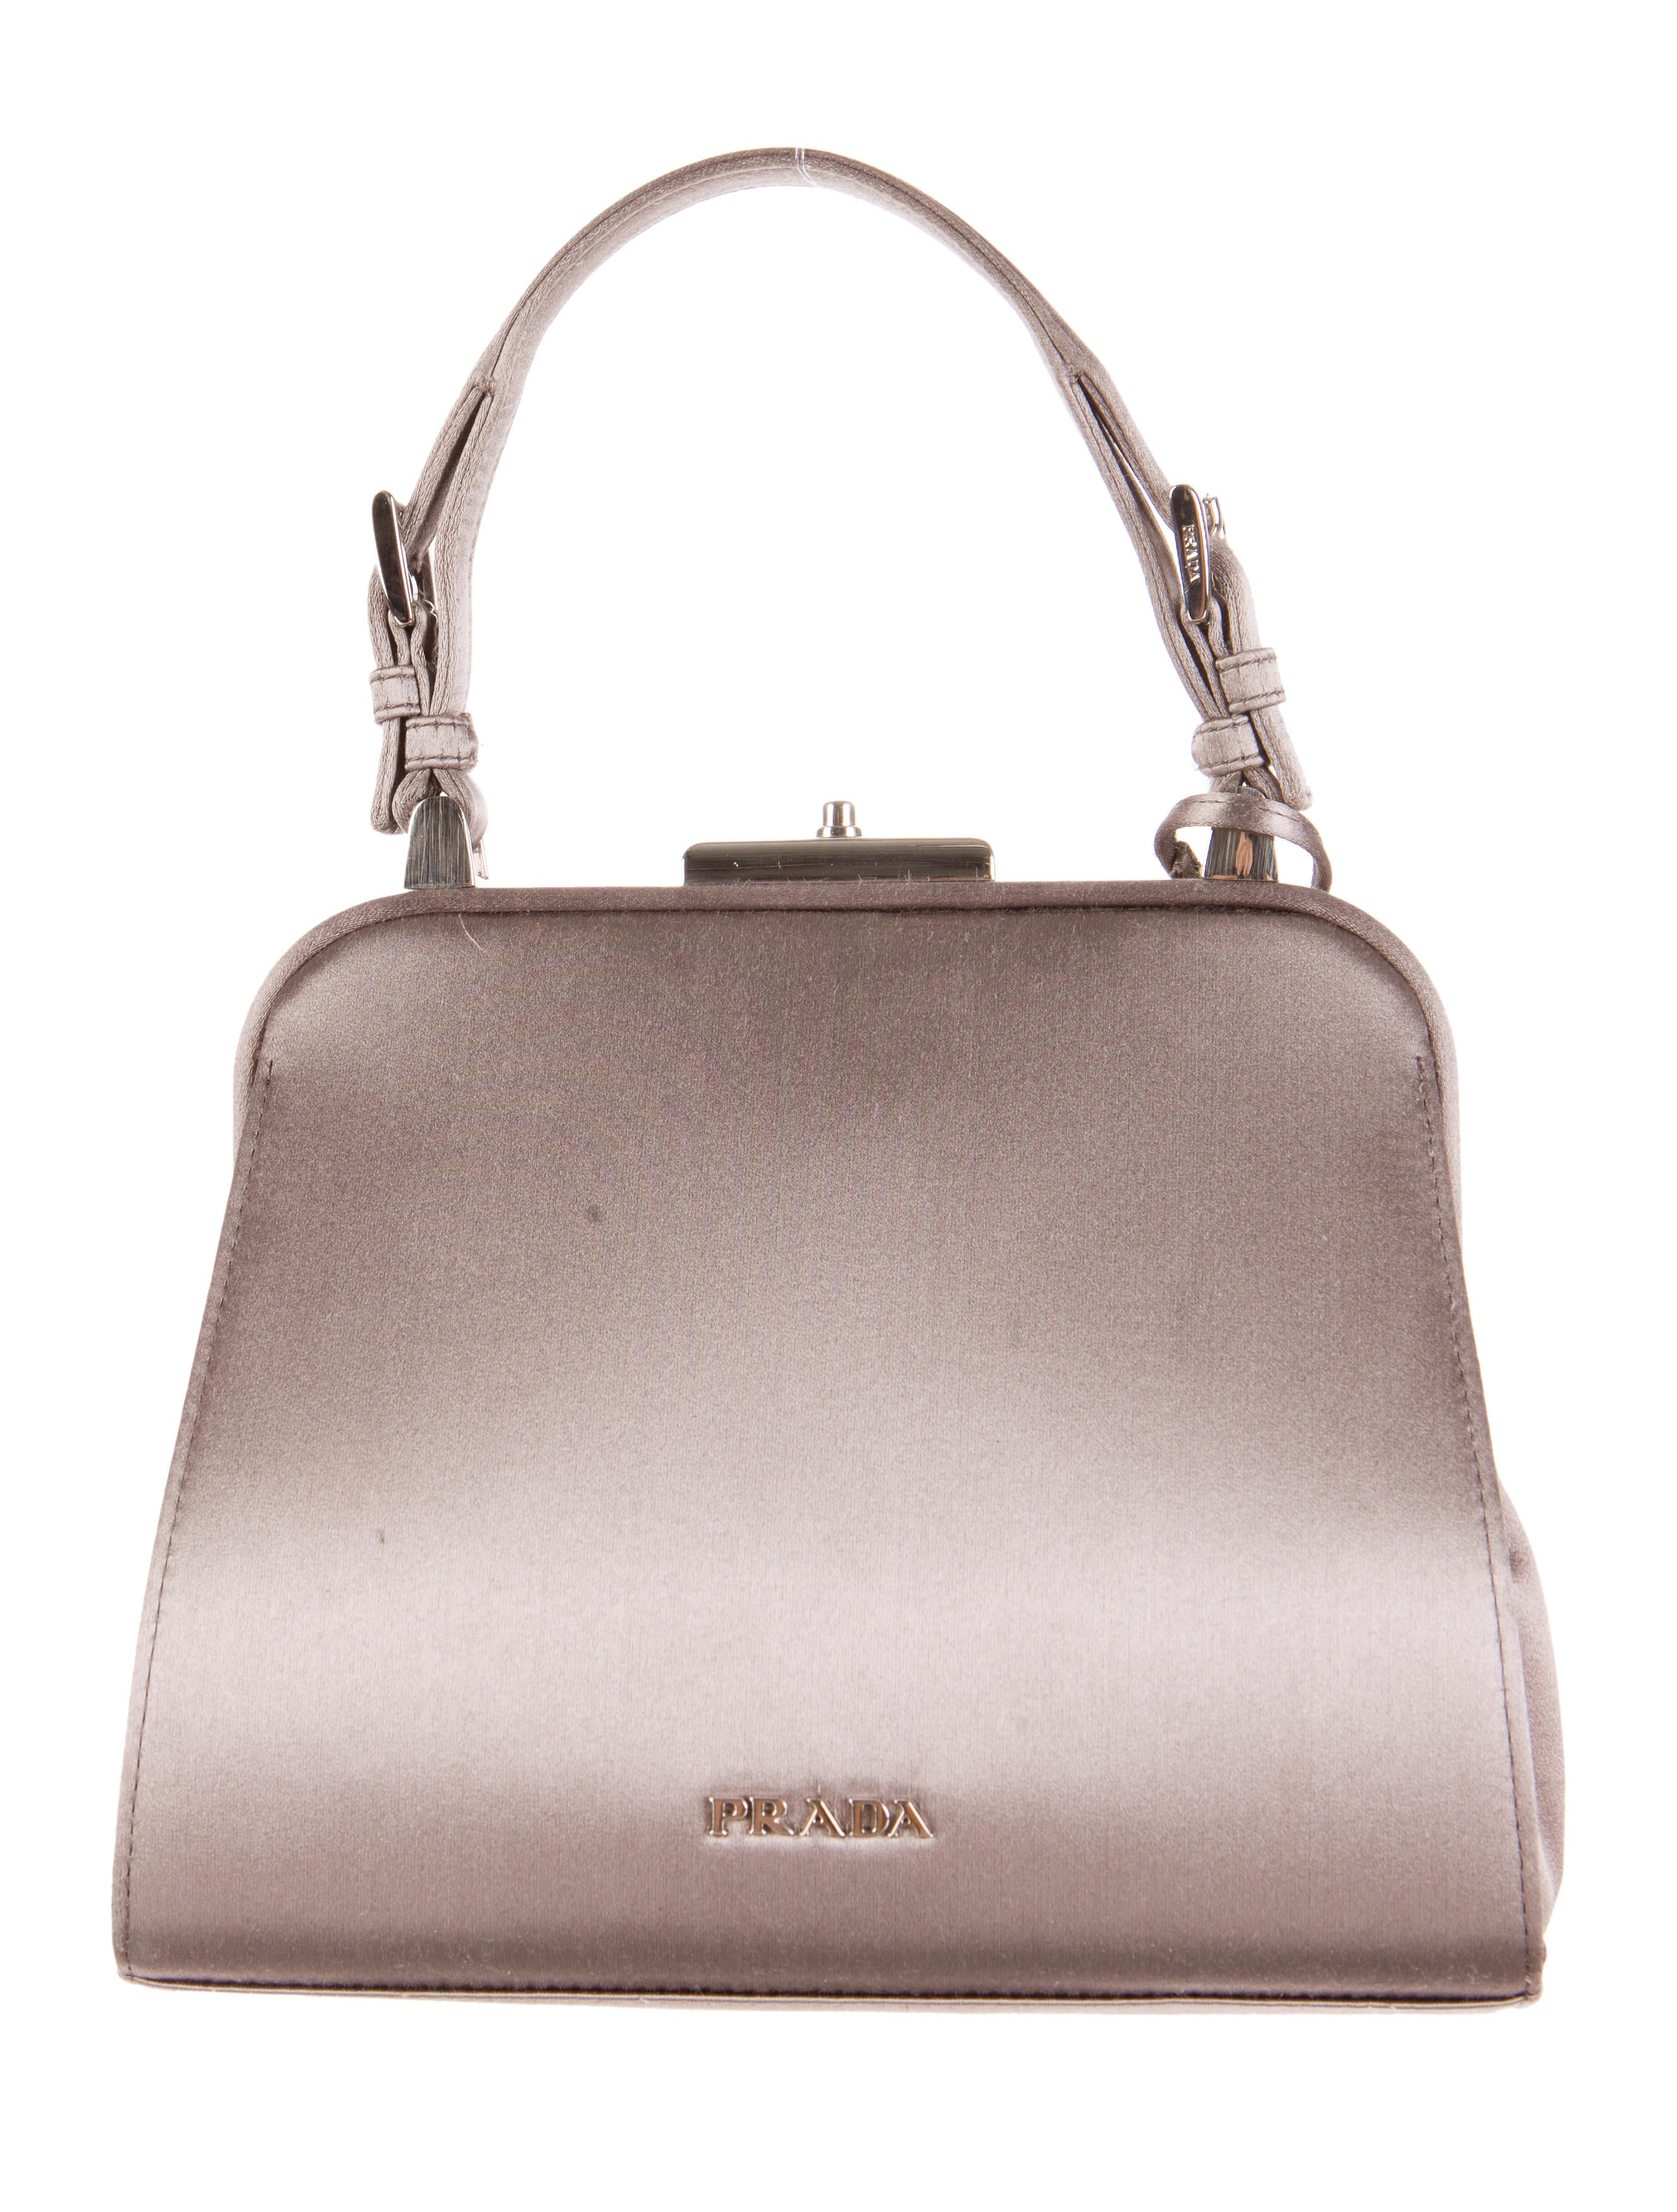 Prada Raso Stones Evening Bag - Handbags - PRA69332 | The RealReal